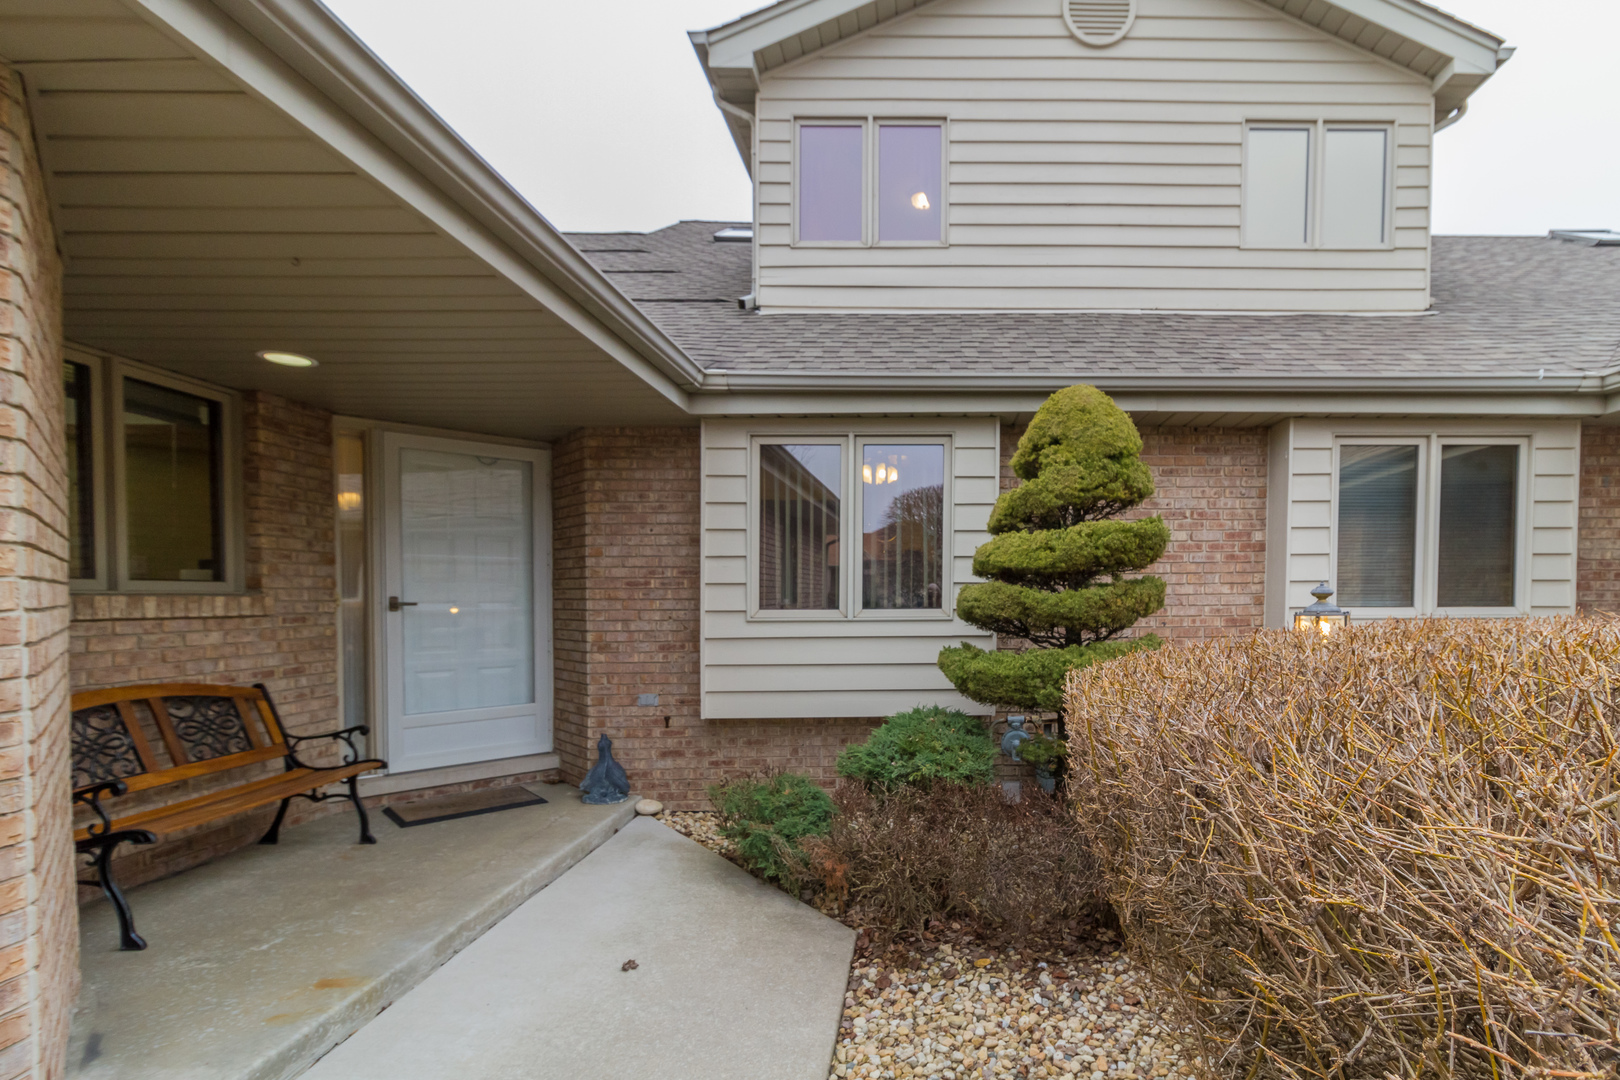 18334 Pine Wood Lane, Tinley Park in Cook County, IL 60477 Home for Sale